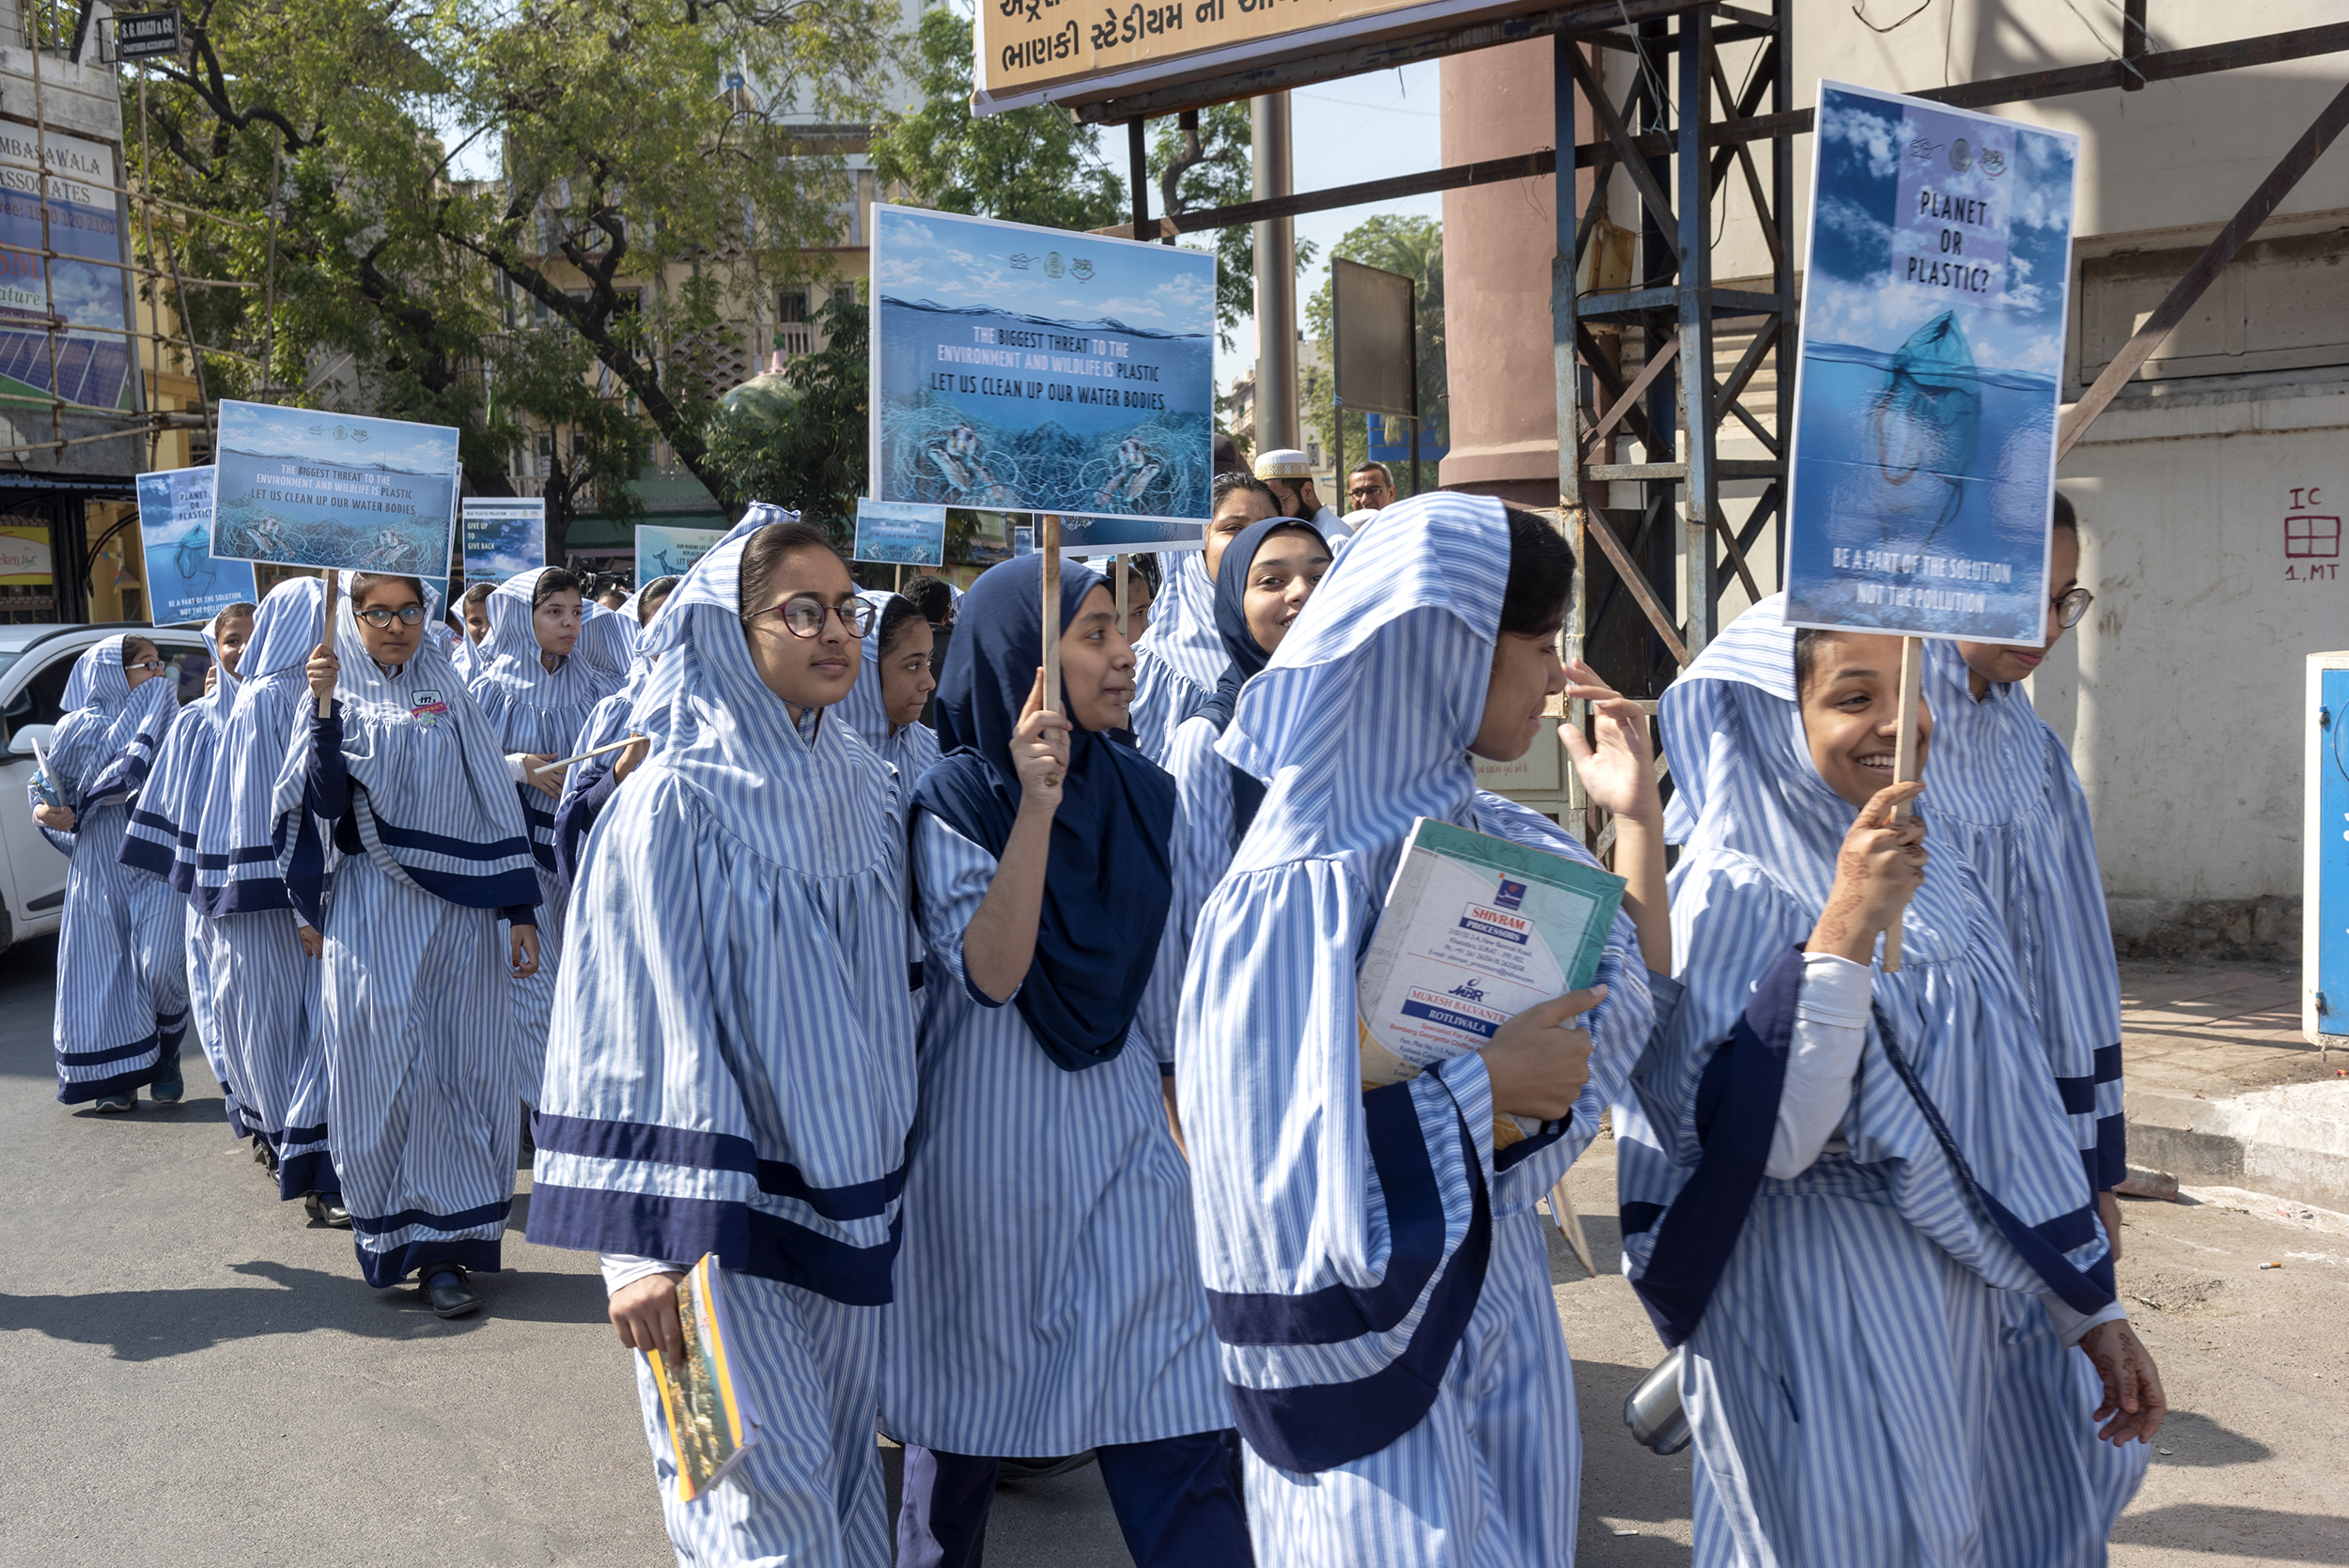 Dawoodi Bohras, Students, Rally, Plastic Pollution, Turning the Tide, Afroz Shah, Tapti River, Surat